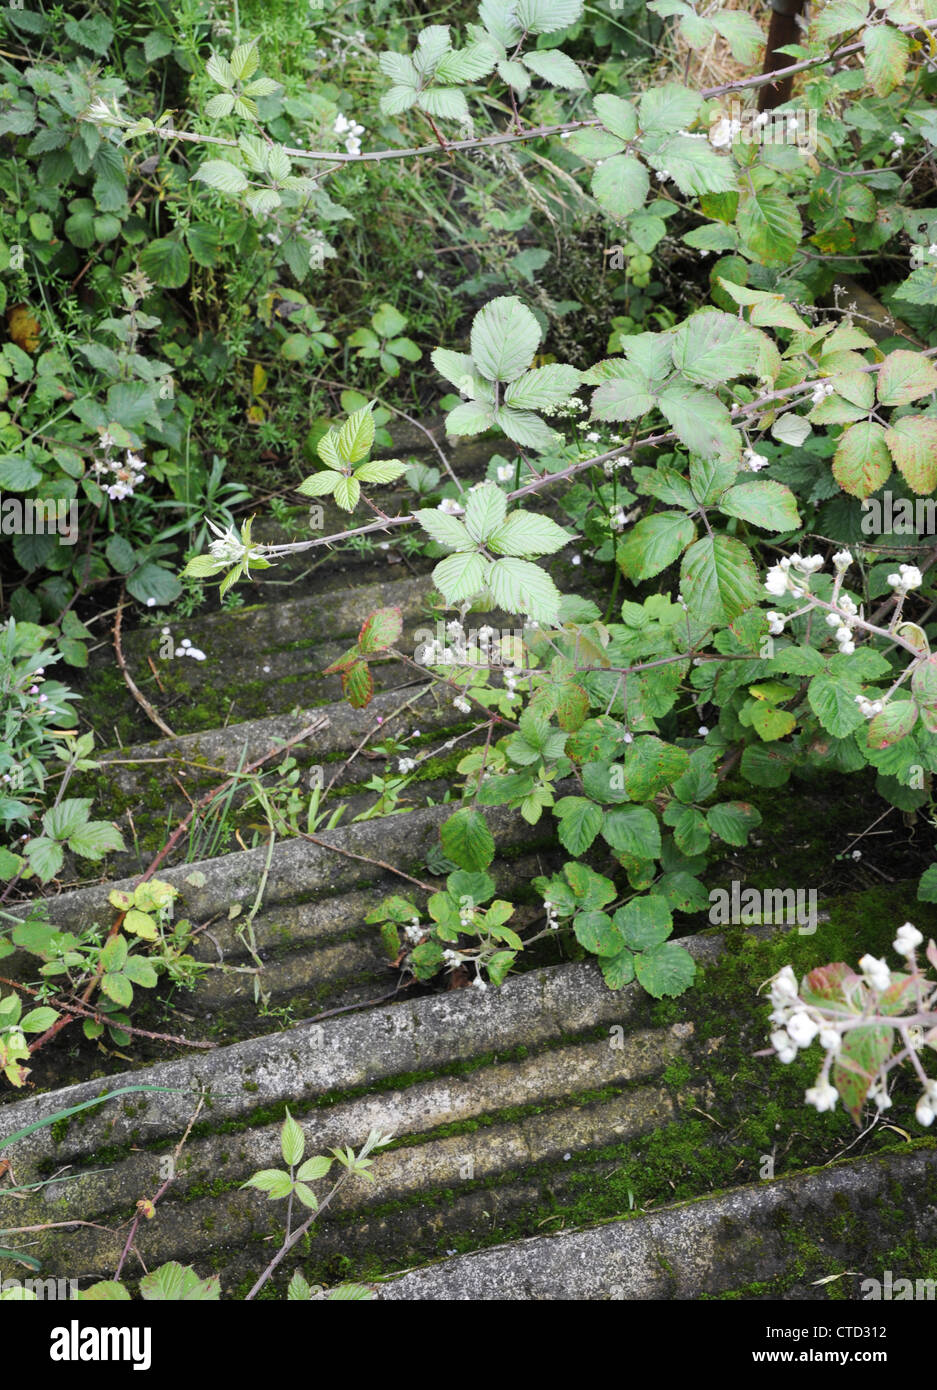 Steps overgrown by brambles. - Stock Image